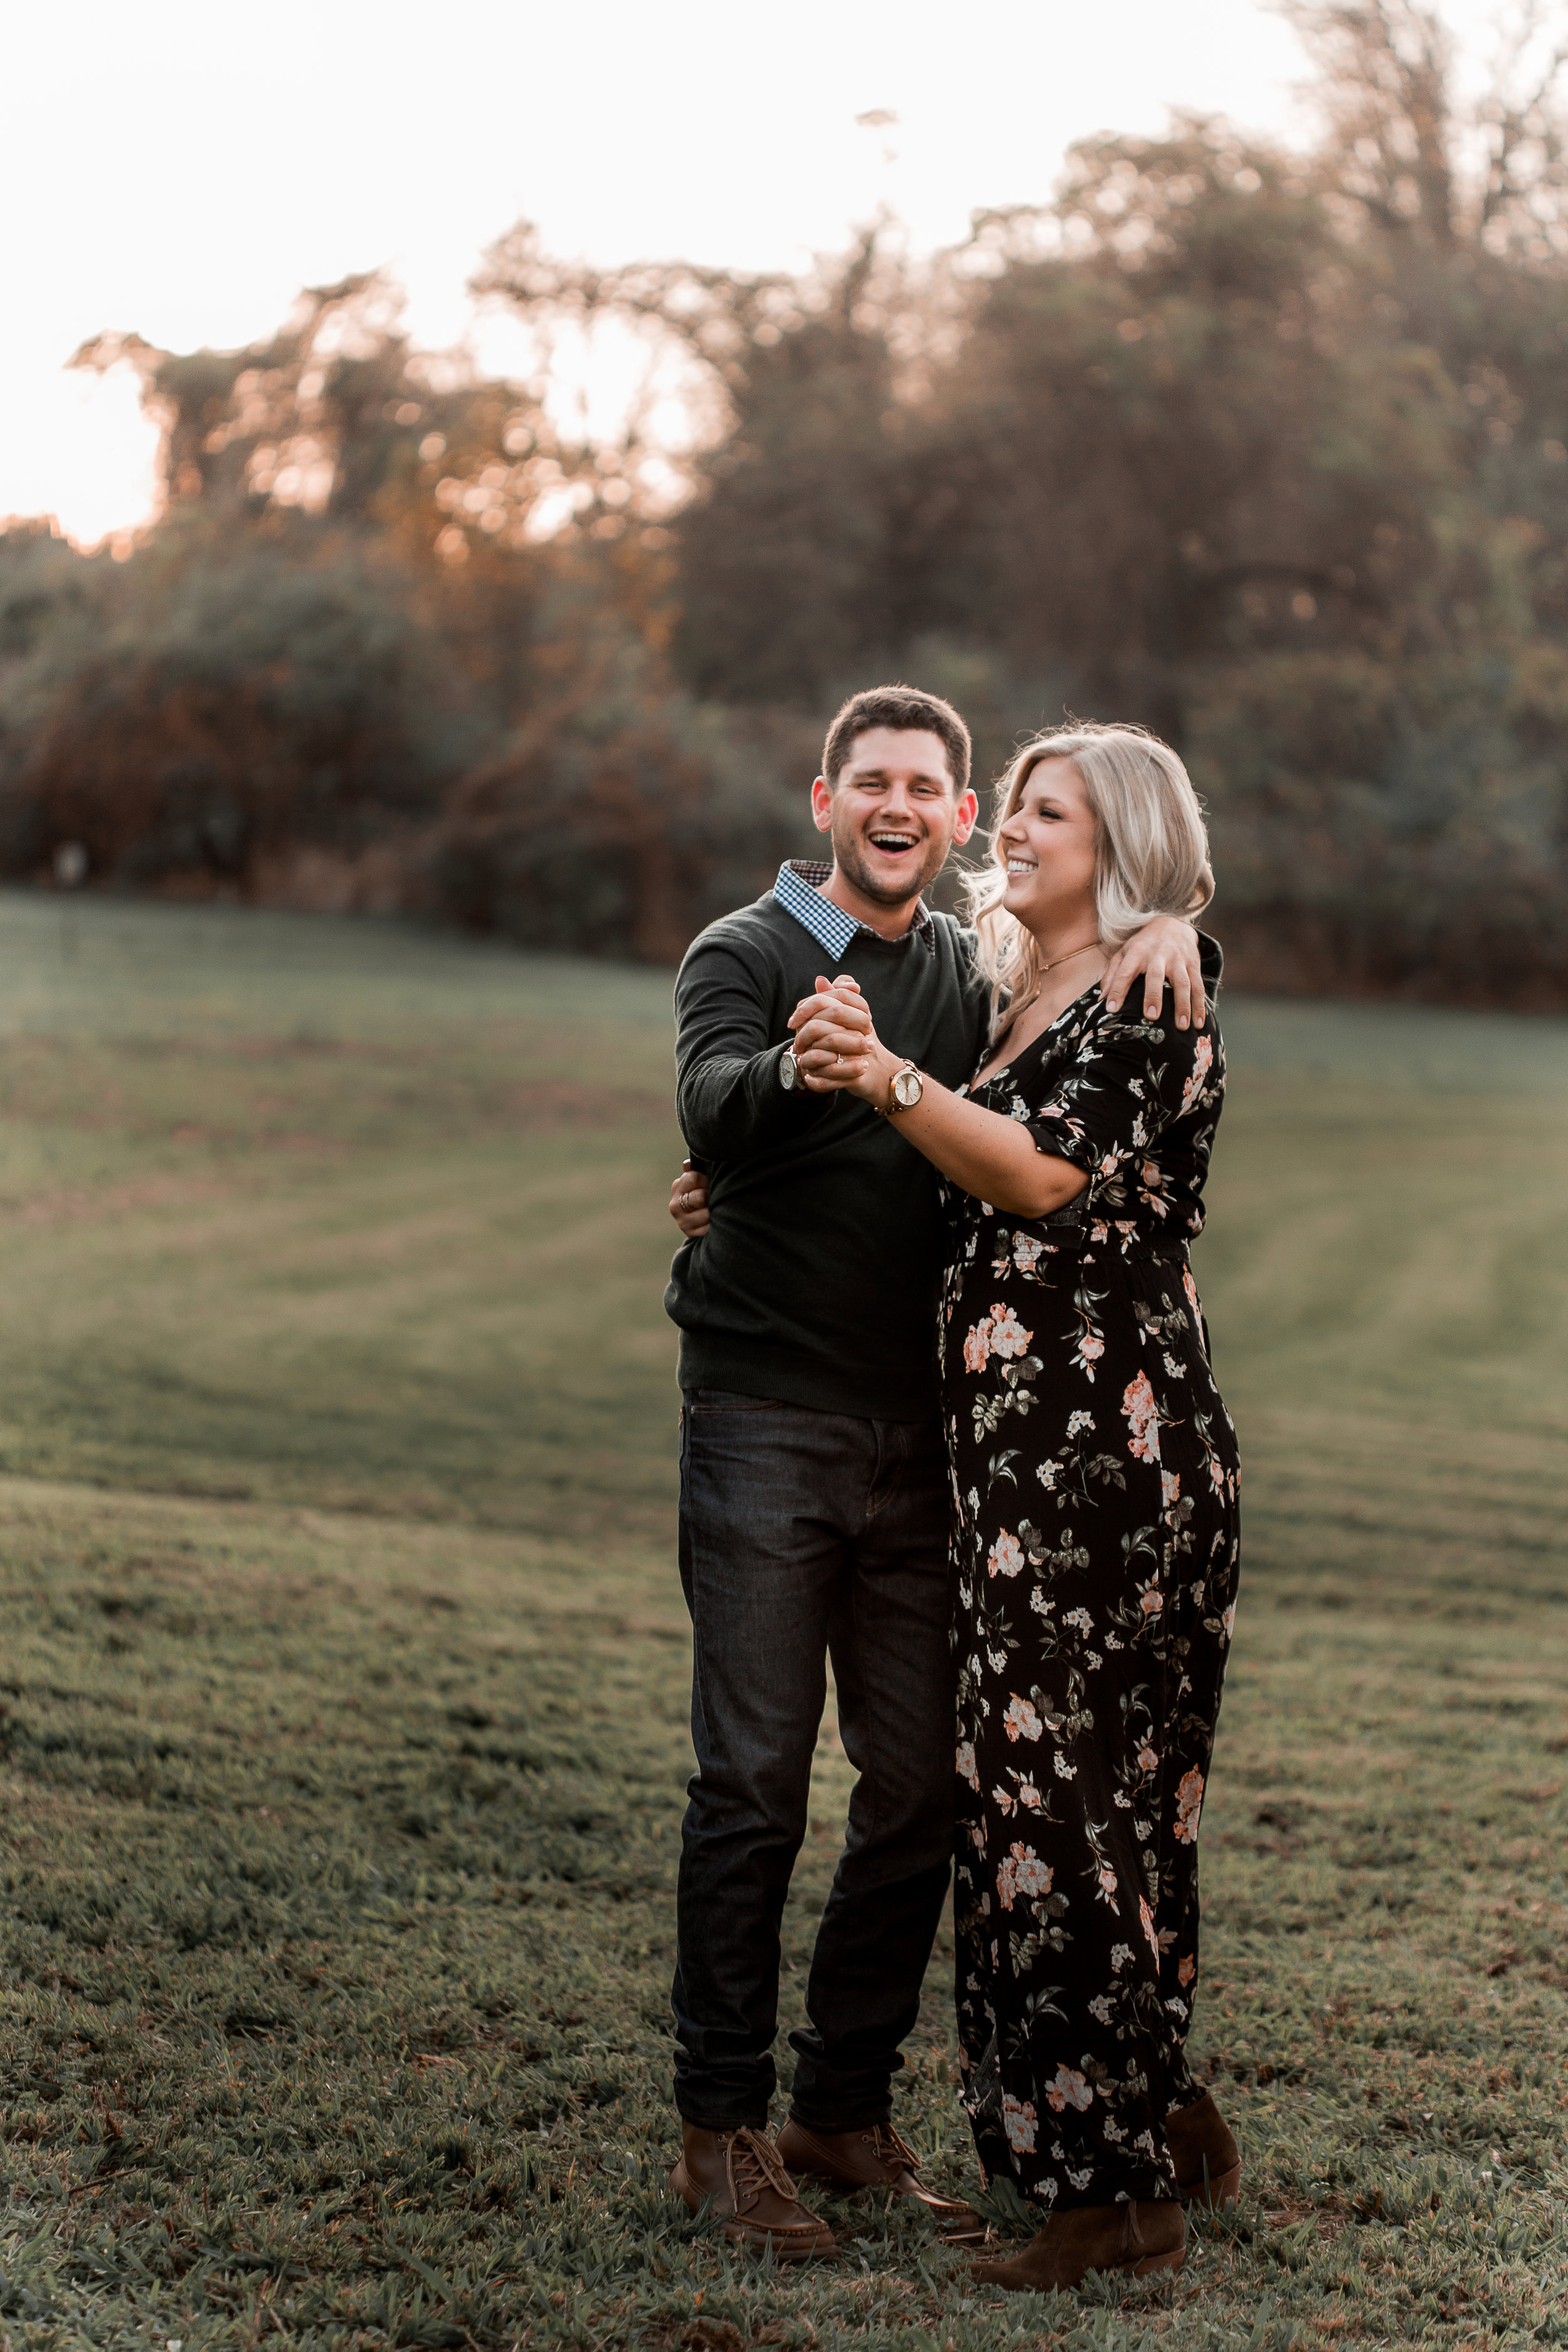 nicole-daacke-photography-carefree-bohemian-lancaster-pa-pennsylvania-engagement-photos-engagement-session-golden-sunset-adventure-session-in-lancaster-pa-lancaster-pa-outdoor-wedding-photographer-5.jpg